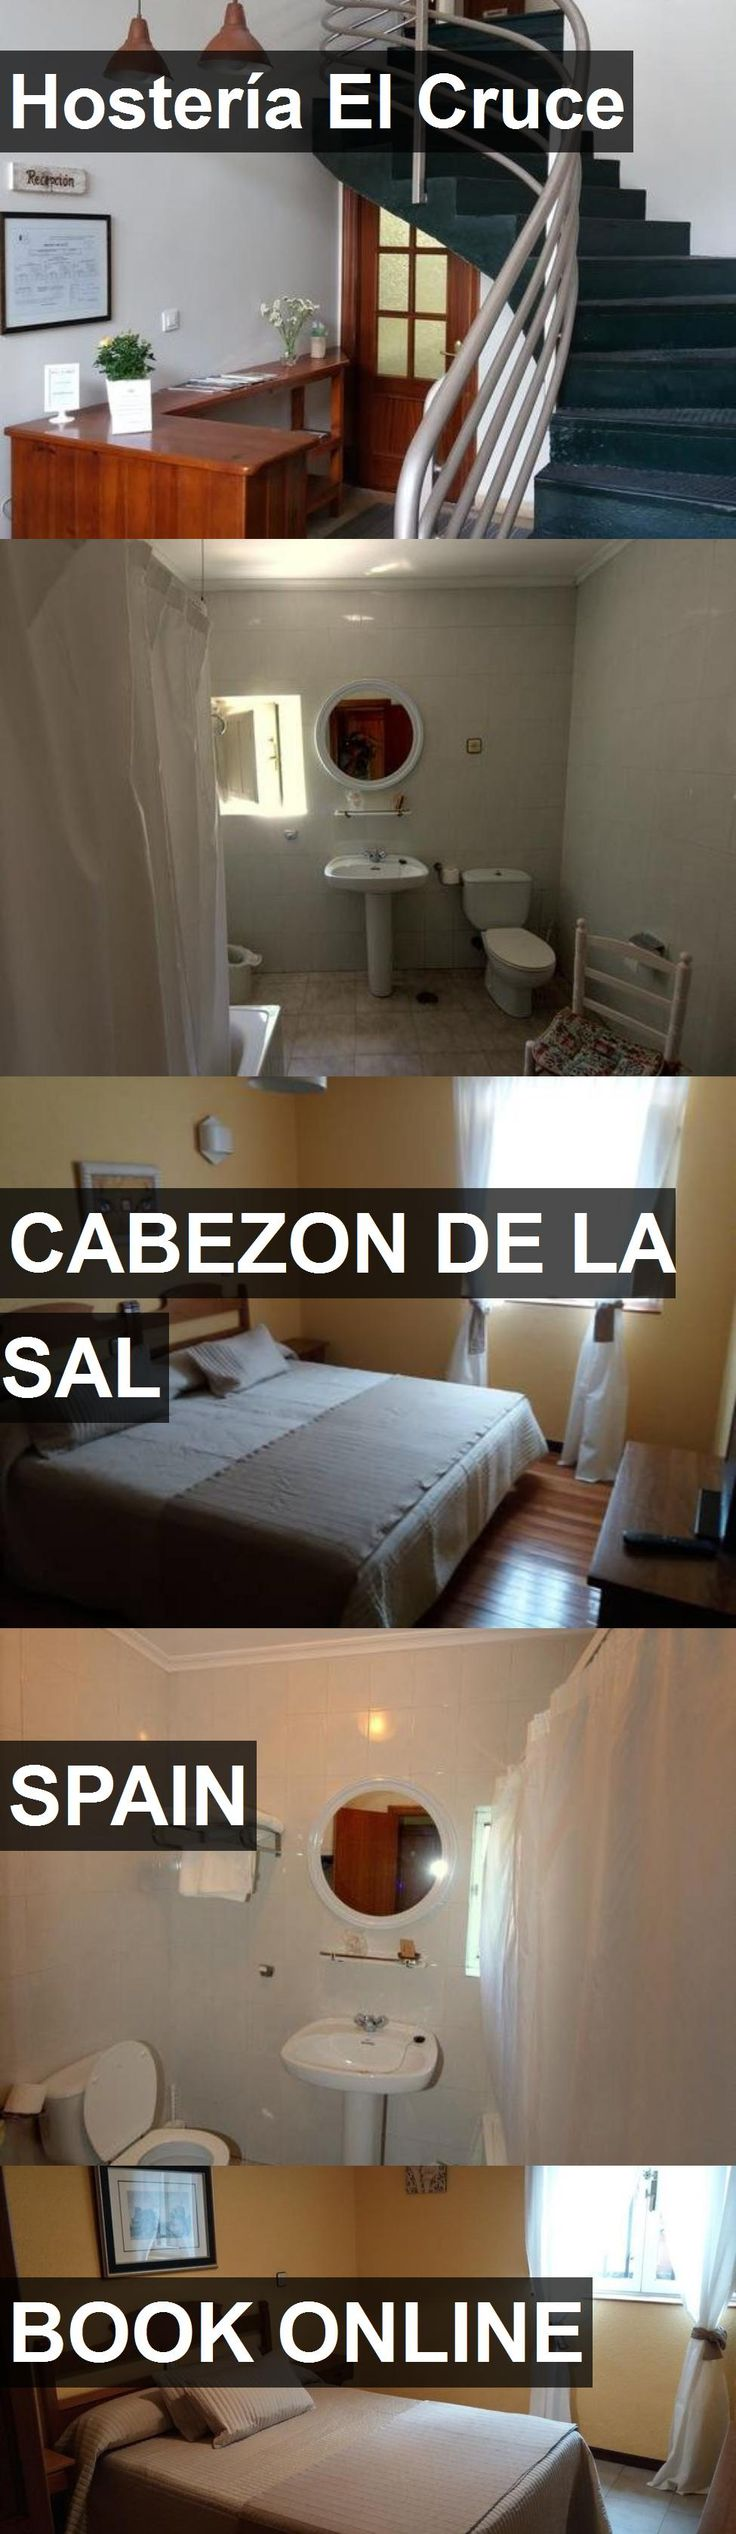 Hotel Hostería El Cruce in Cabezon de la Sal, Spain. For more information, photos, reviews and best prices please follow the link. #Spain #CabezondelaSal #travel #vacation #hotel